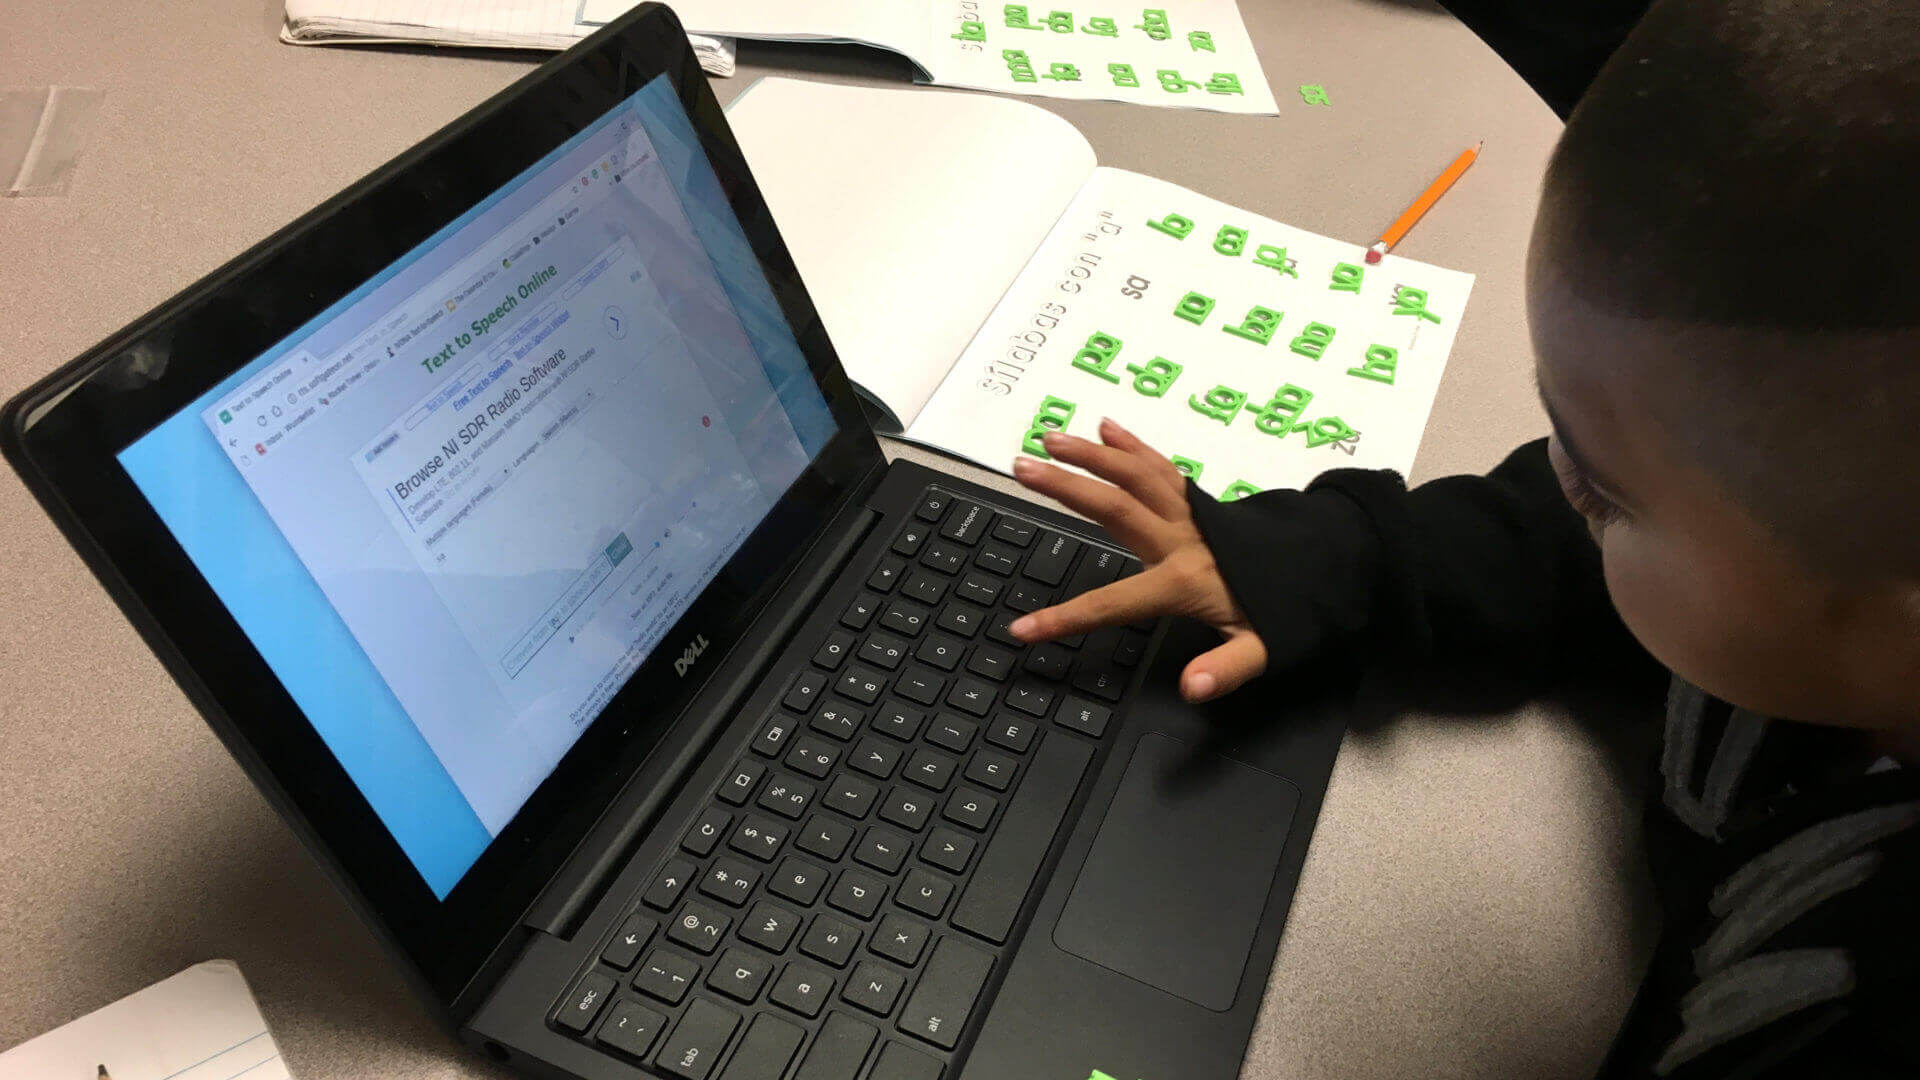 Bilingual Learning With 3D Printing at Elementary School | All3DP